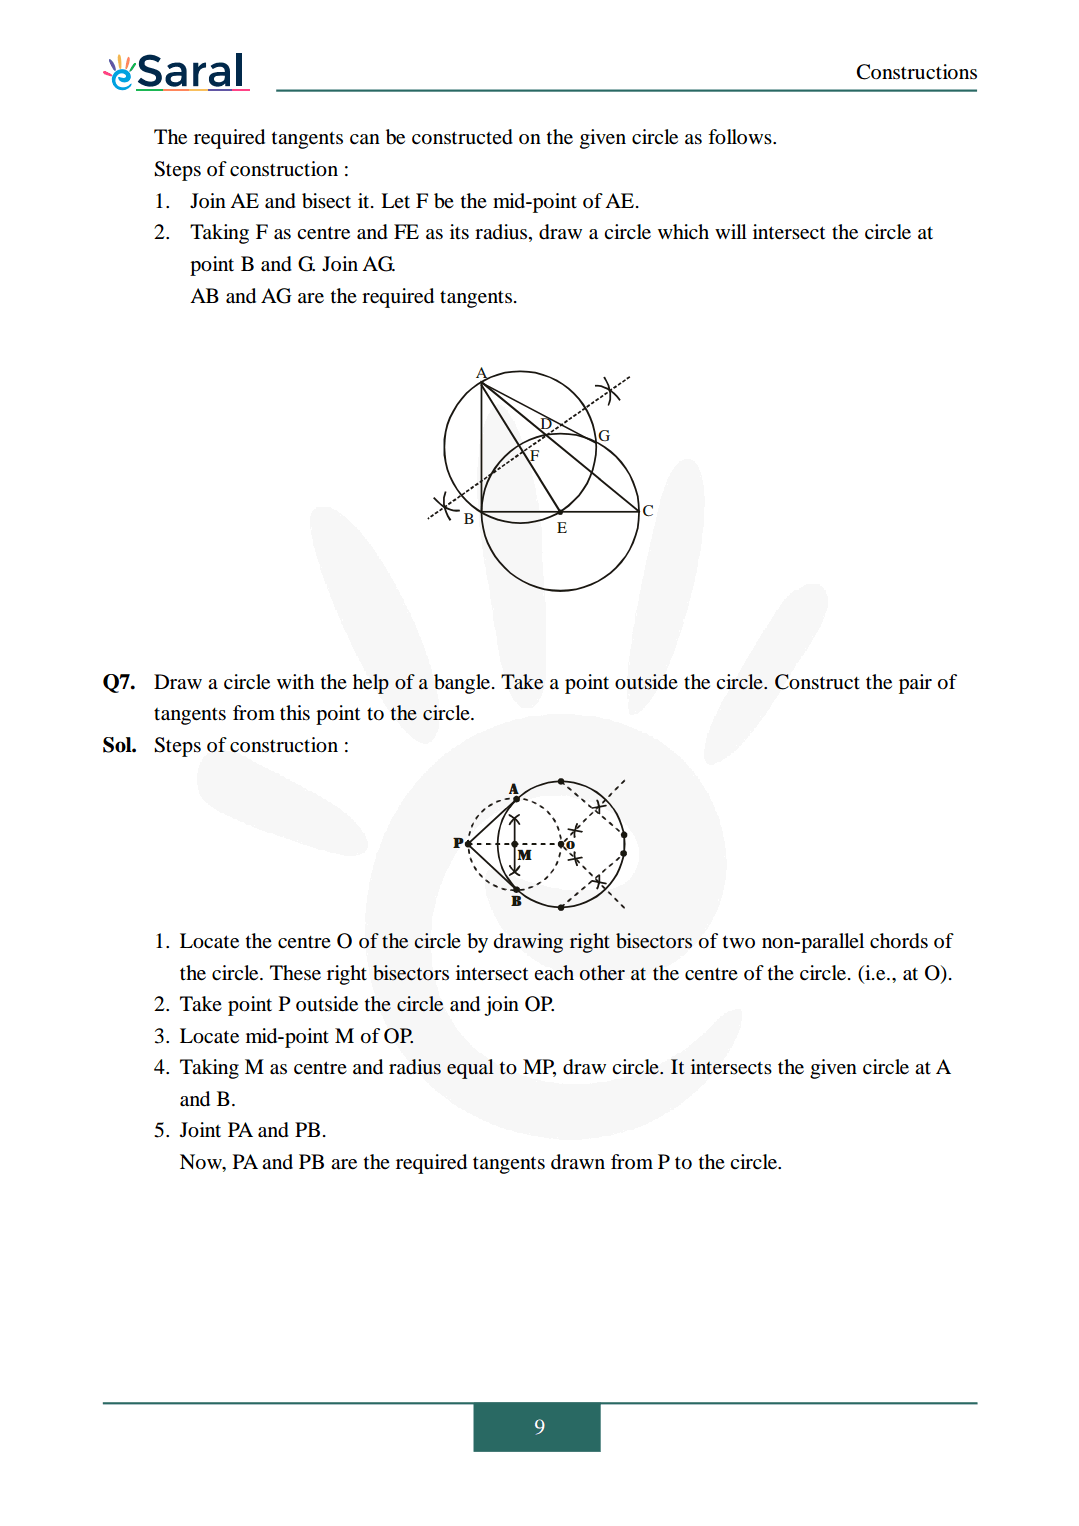 exercise 11.2 solutions Image 4